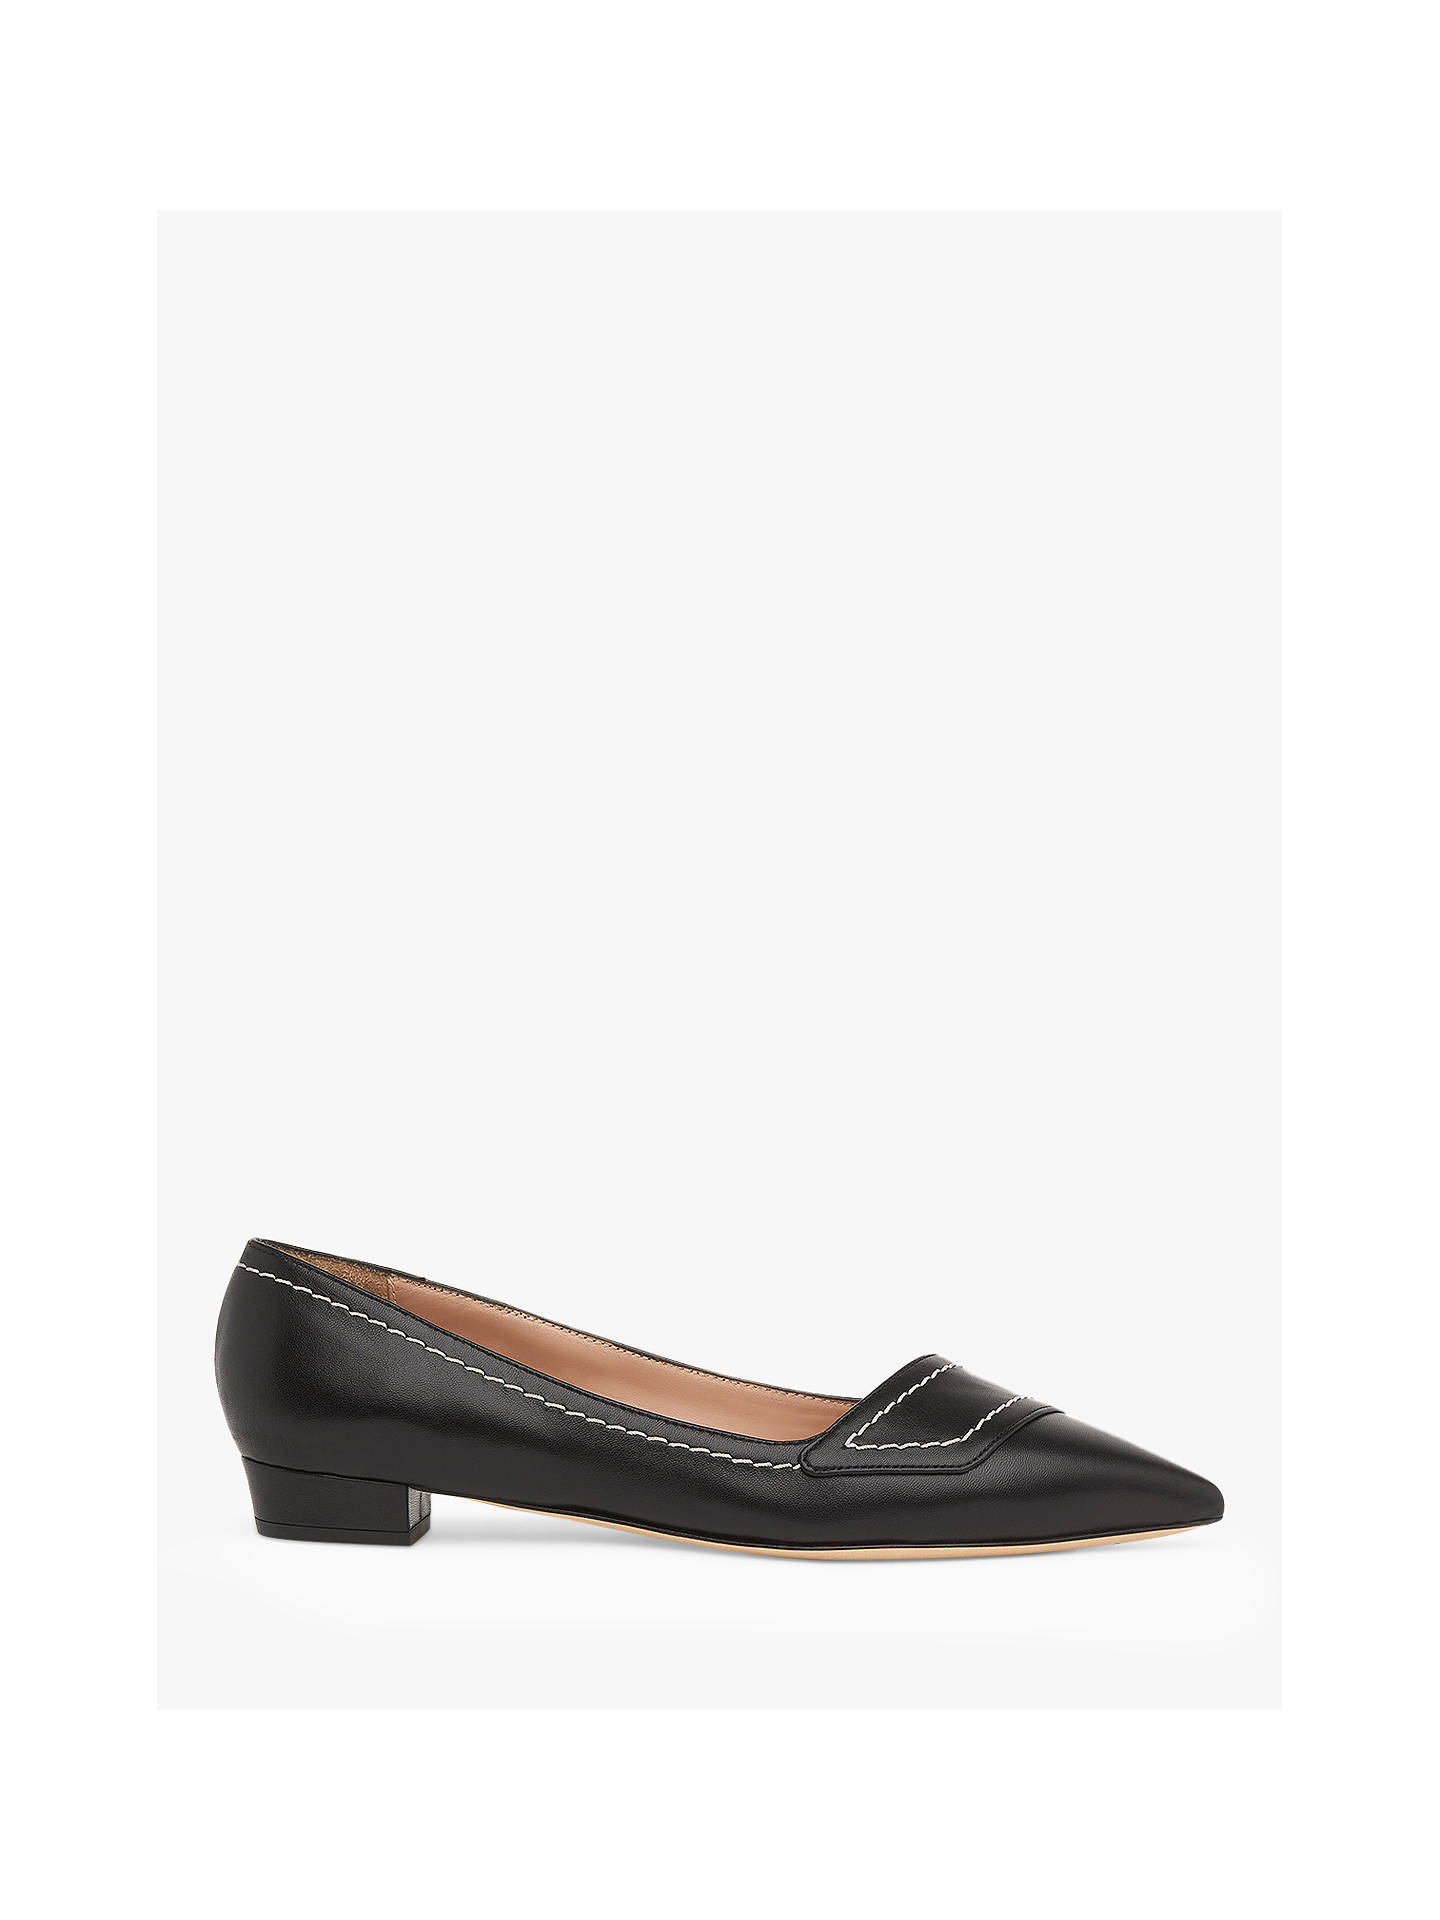 Buy L.K.Bennett Polly Leather Pointed Toe Court Shoes, Black, 2 Online at johnlewis.com